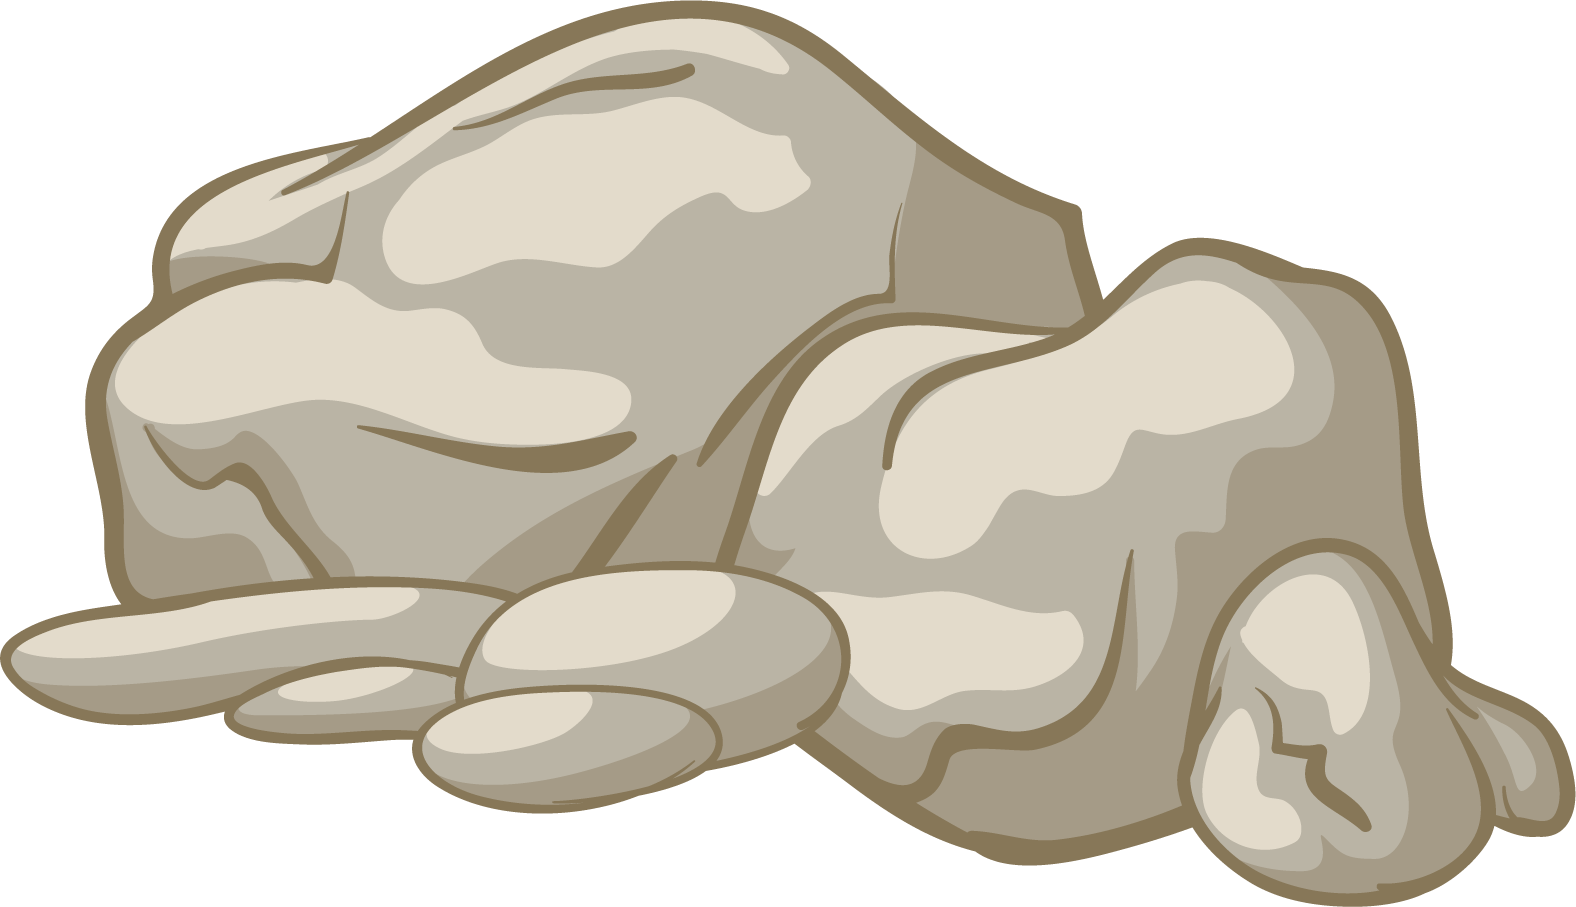 cliff huge freebie. Clipart grass rock